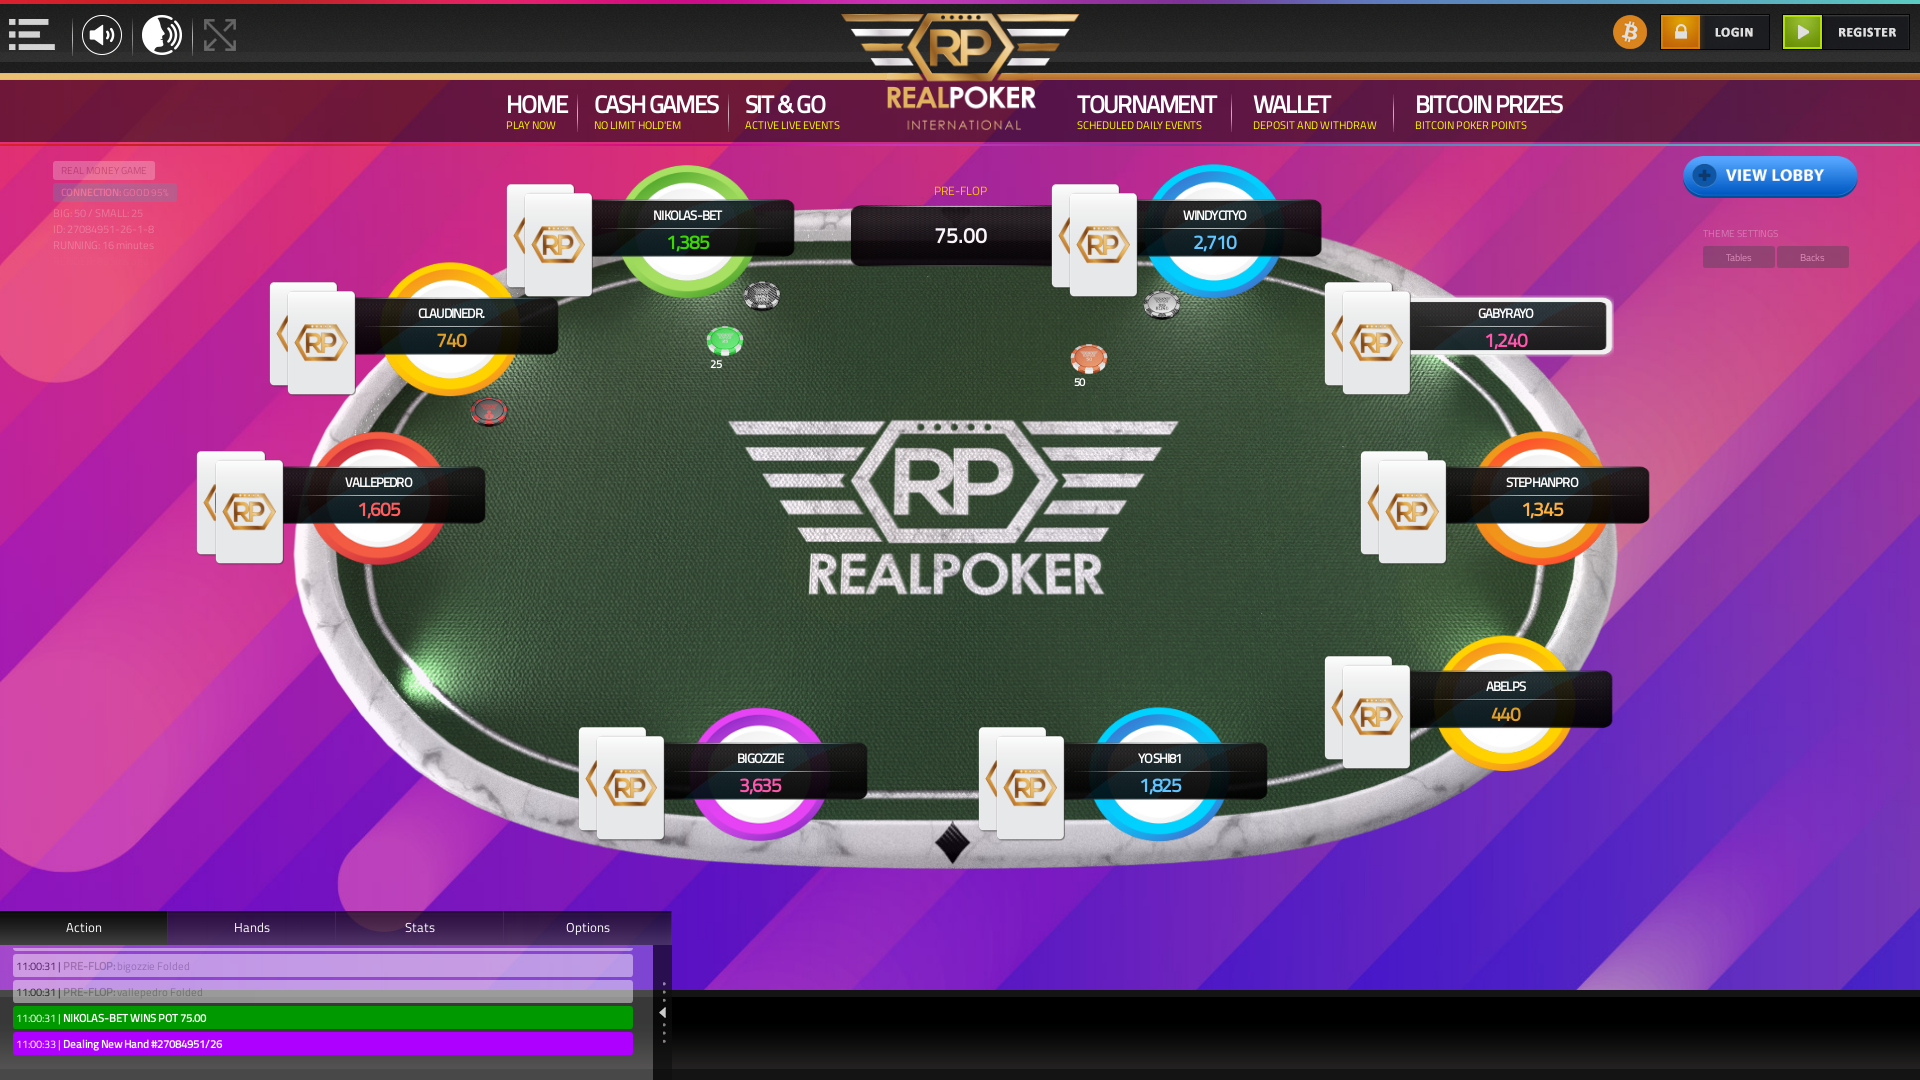 Lithuania texas holdem poker table on a 10 player table in the 15th minute of the match